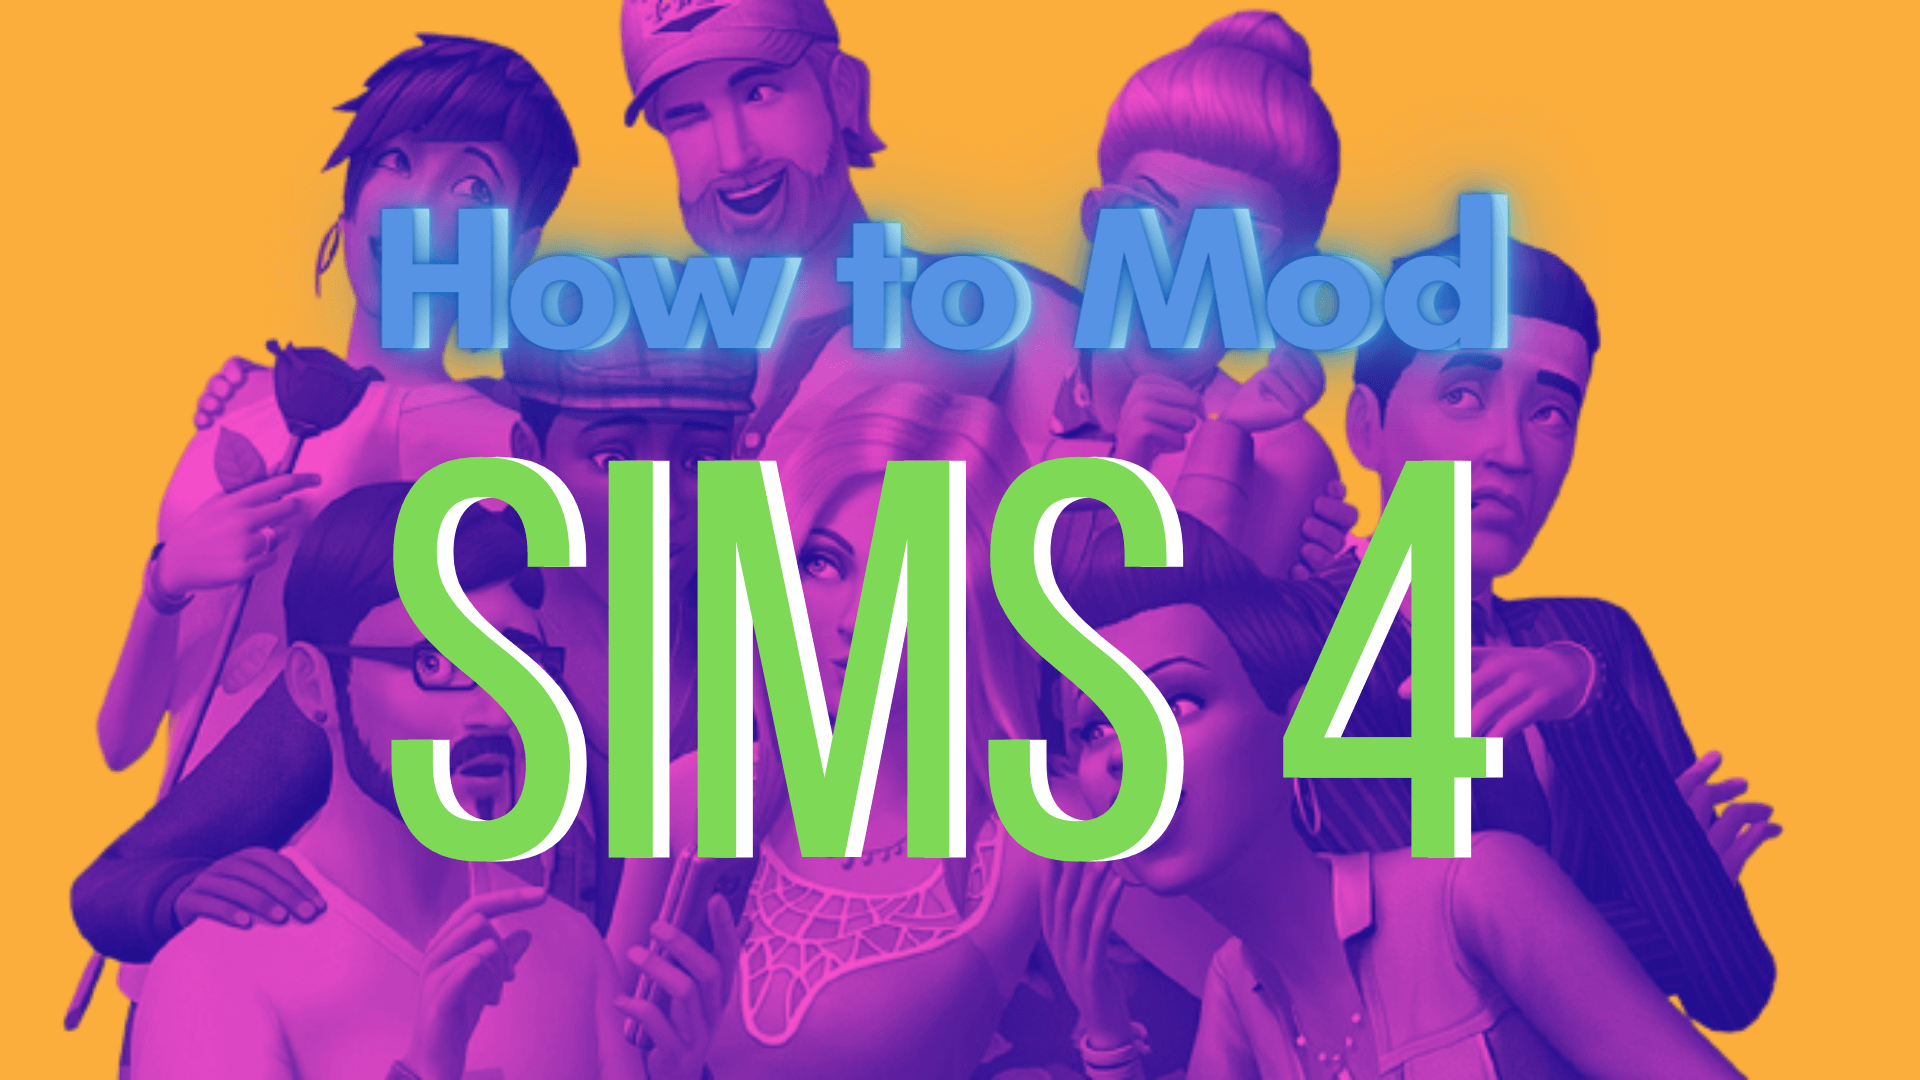 How to Mod Sims 4